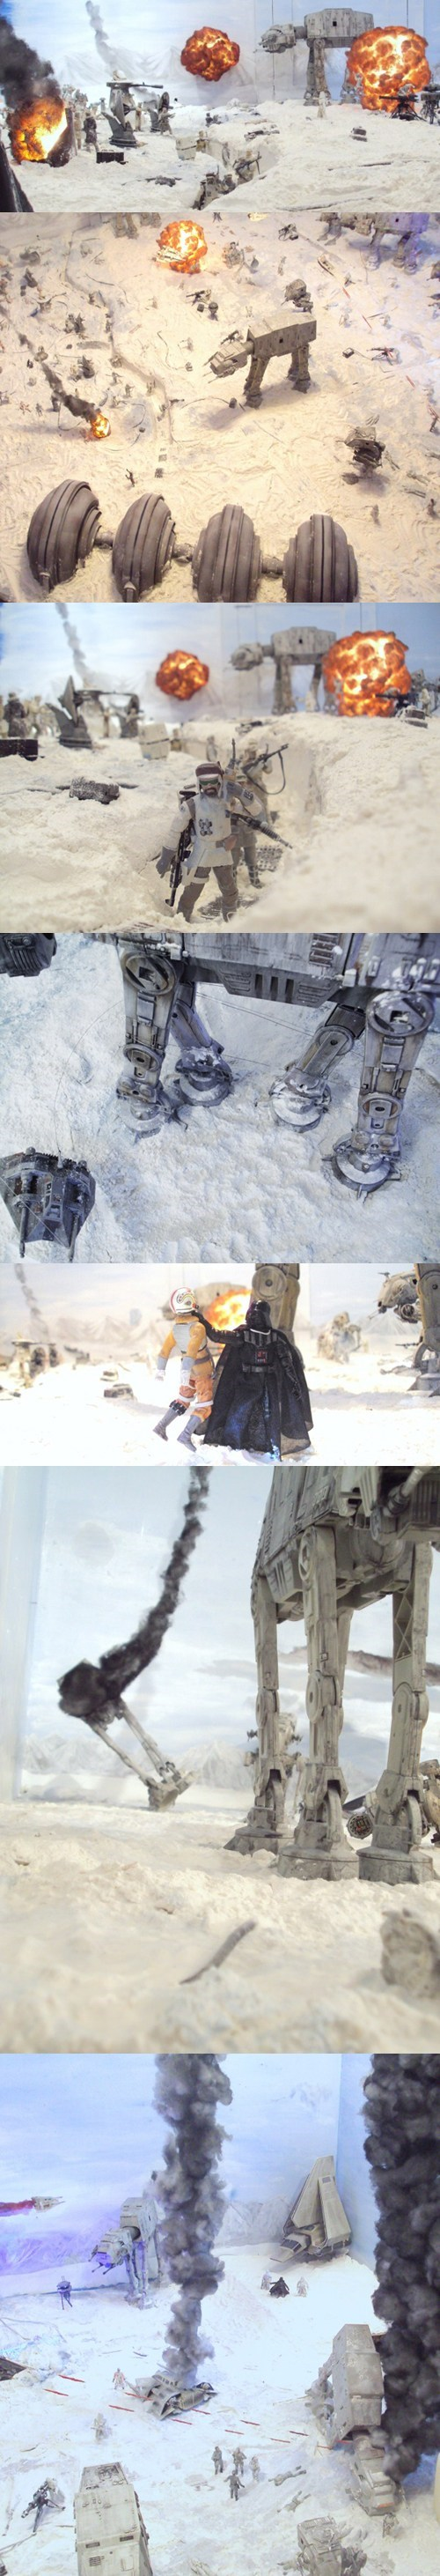 star wars,recreation,diorama,Hoth